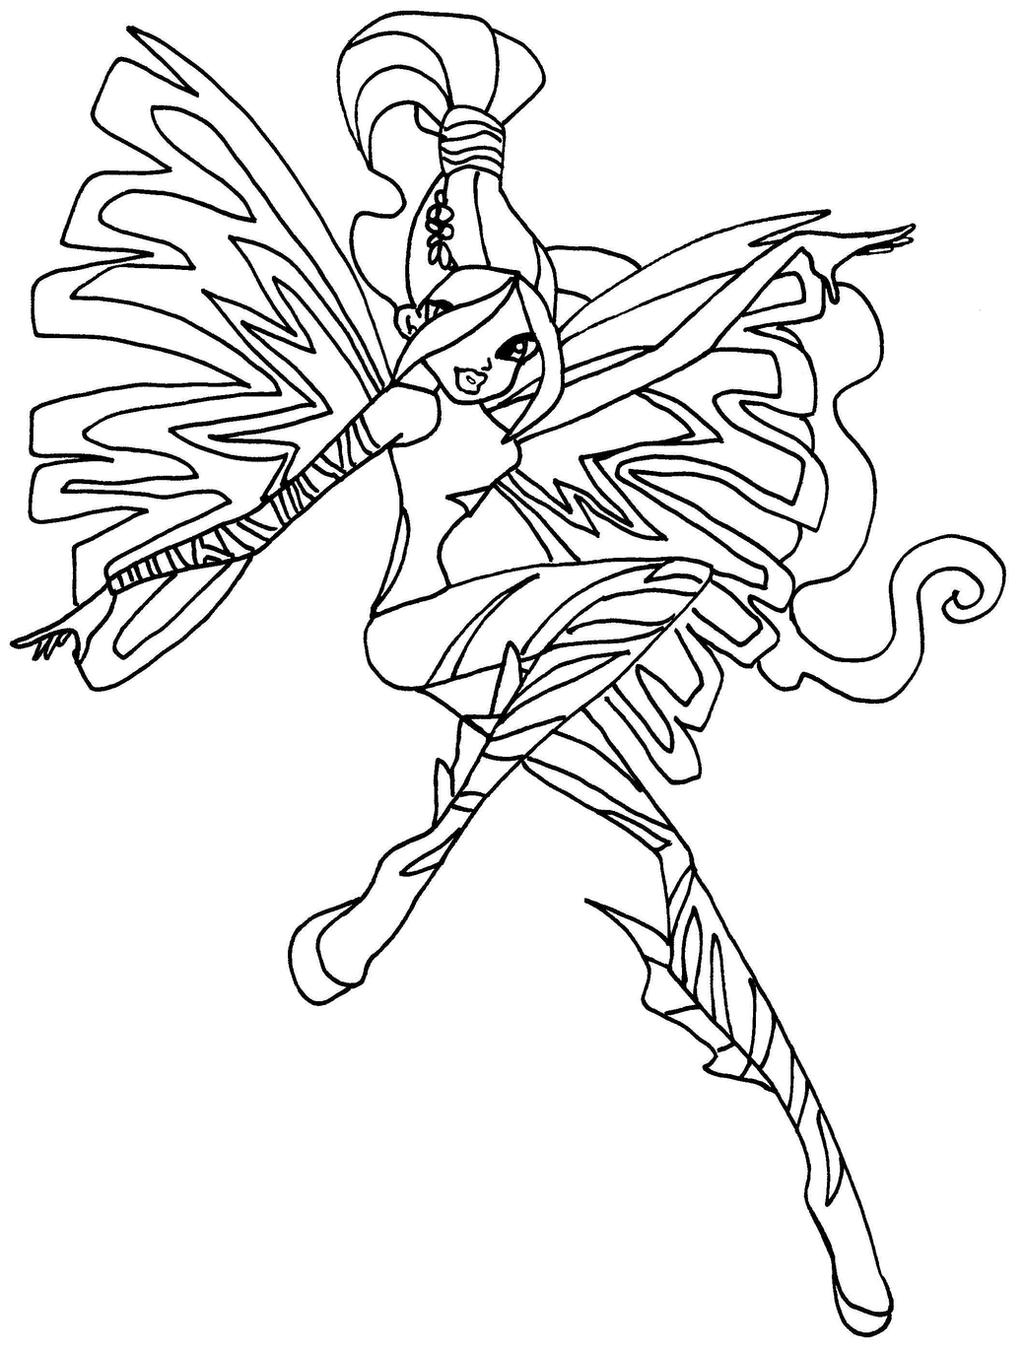 Winx Coloring Pages By Elfkena On Deviantart Coloring Pages